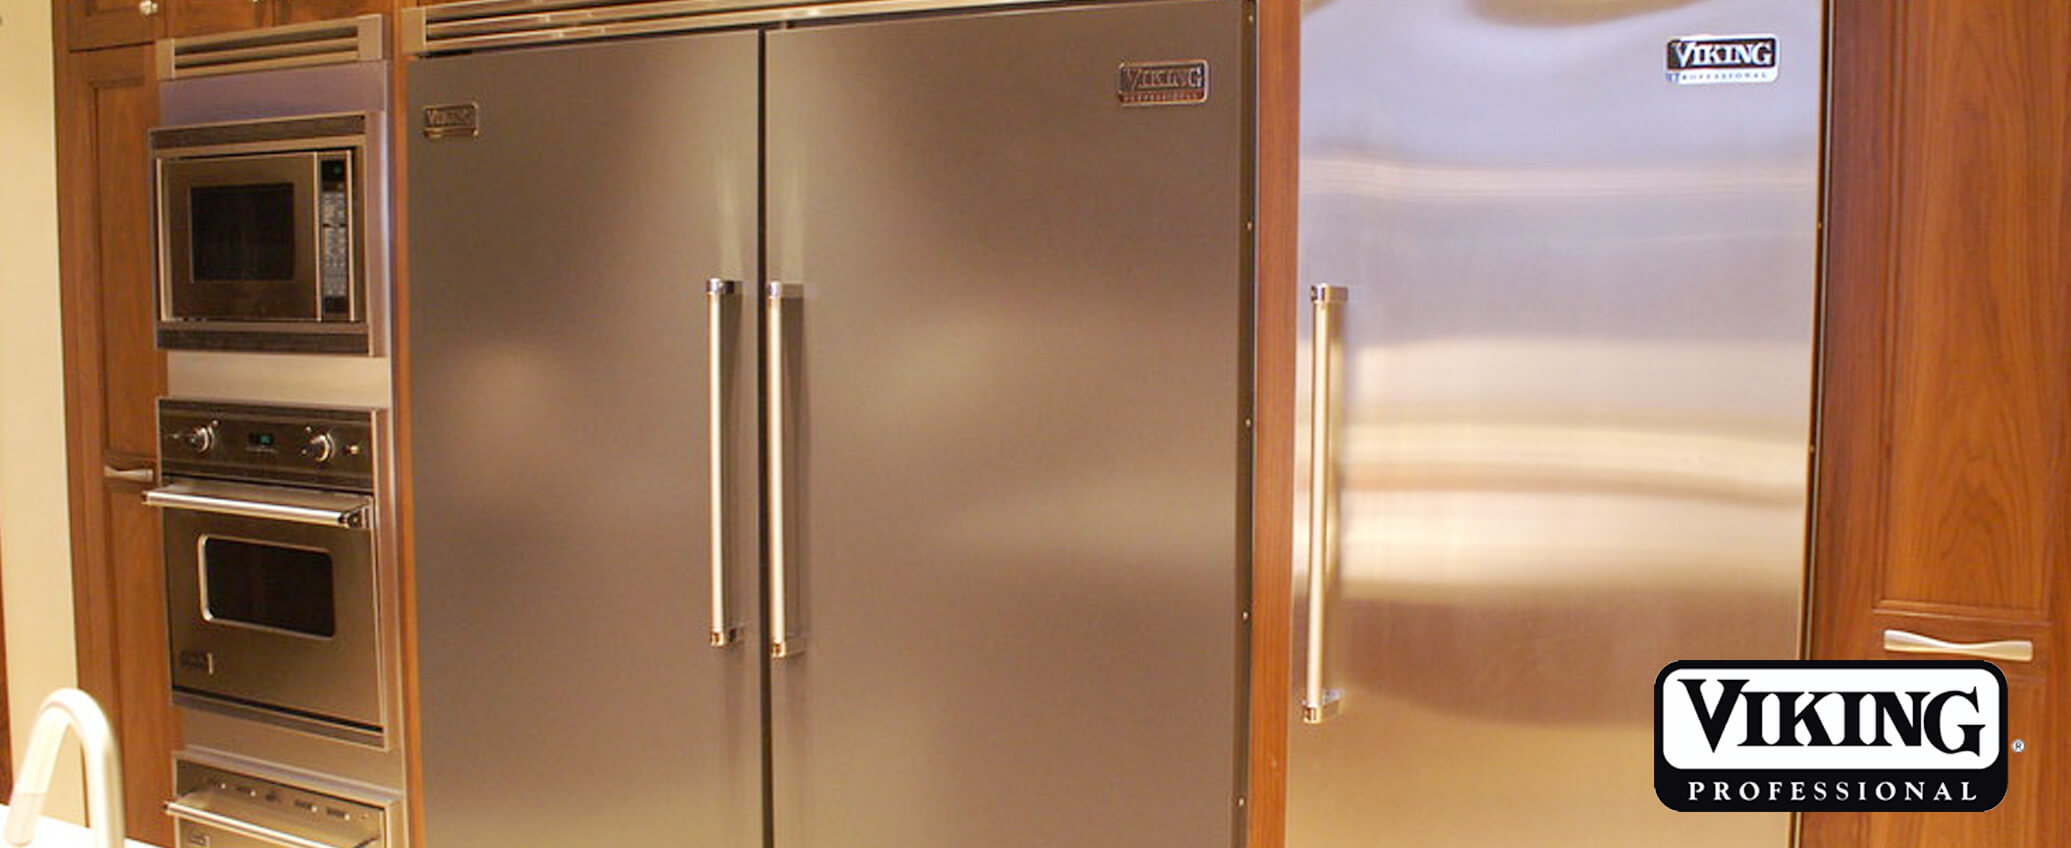 Reasons for Viking fridge leaking water tray is overflowing and how to fix   Professional Viking Repair